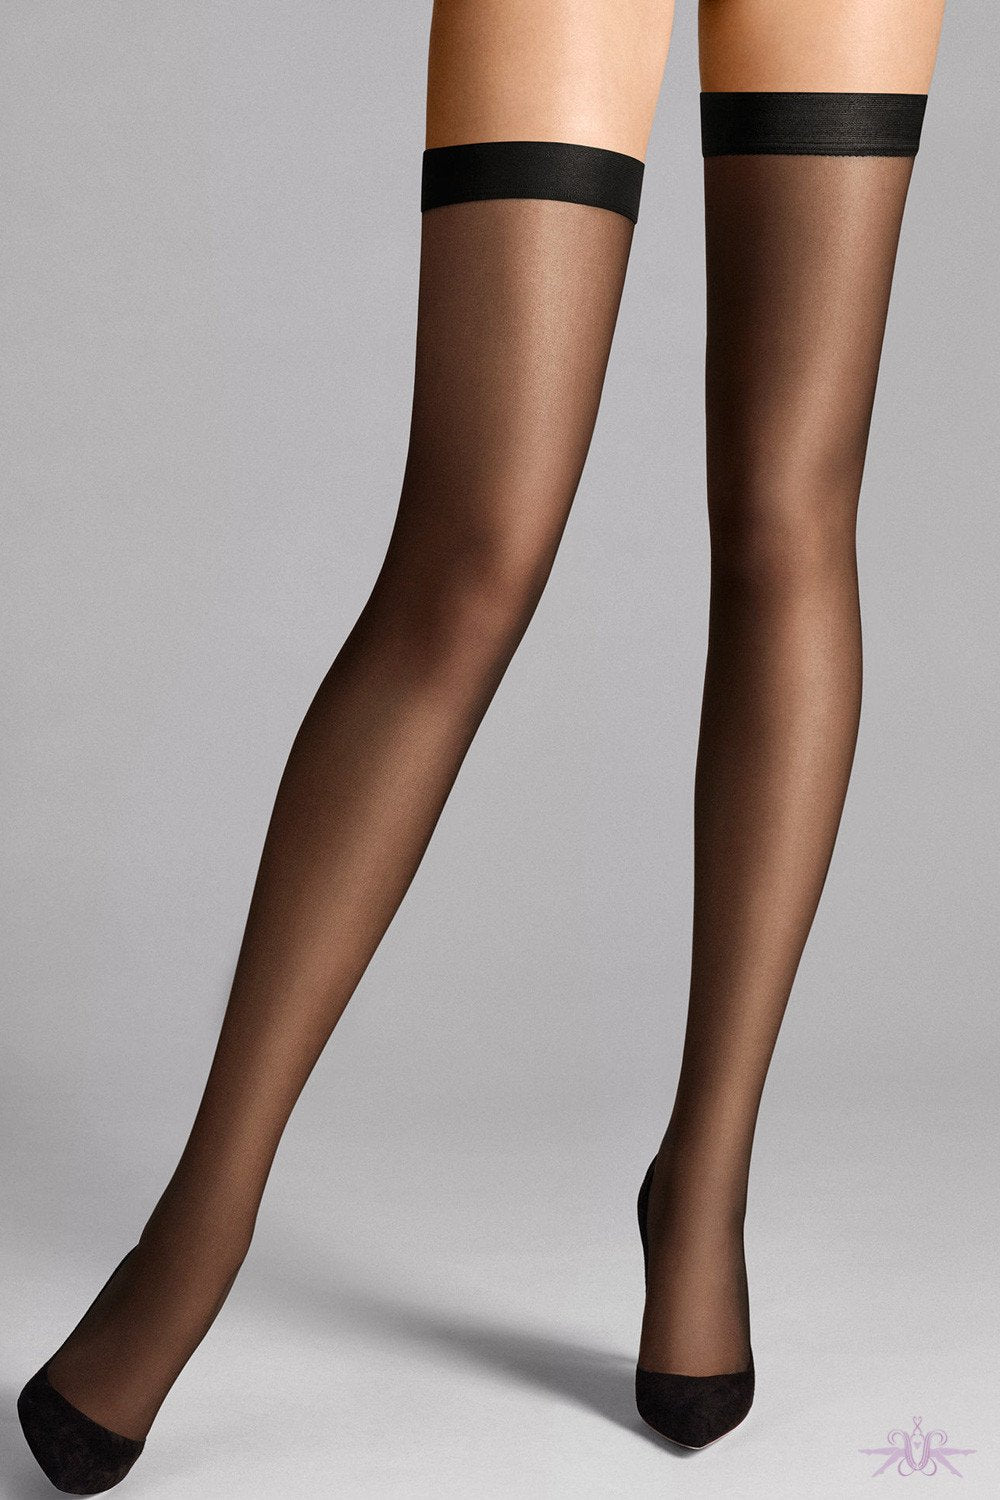 Wolford Individual 10 Stay Ups - Mayfair Stockings